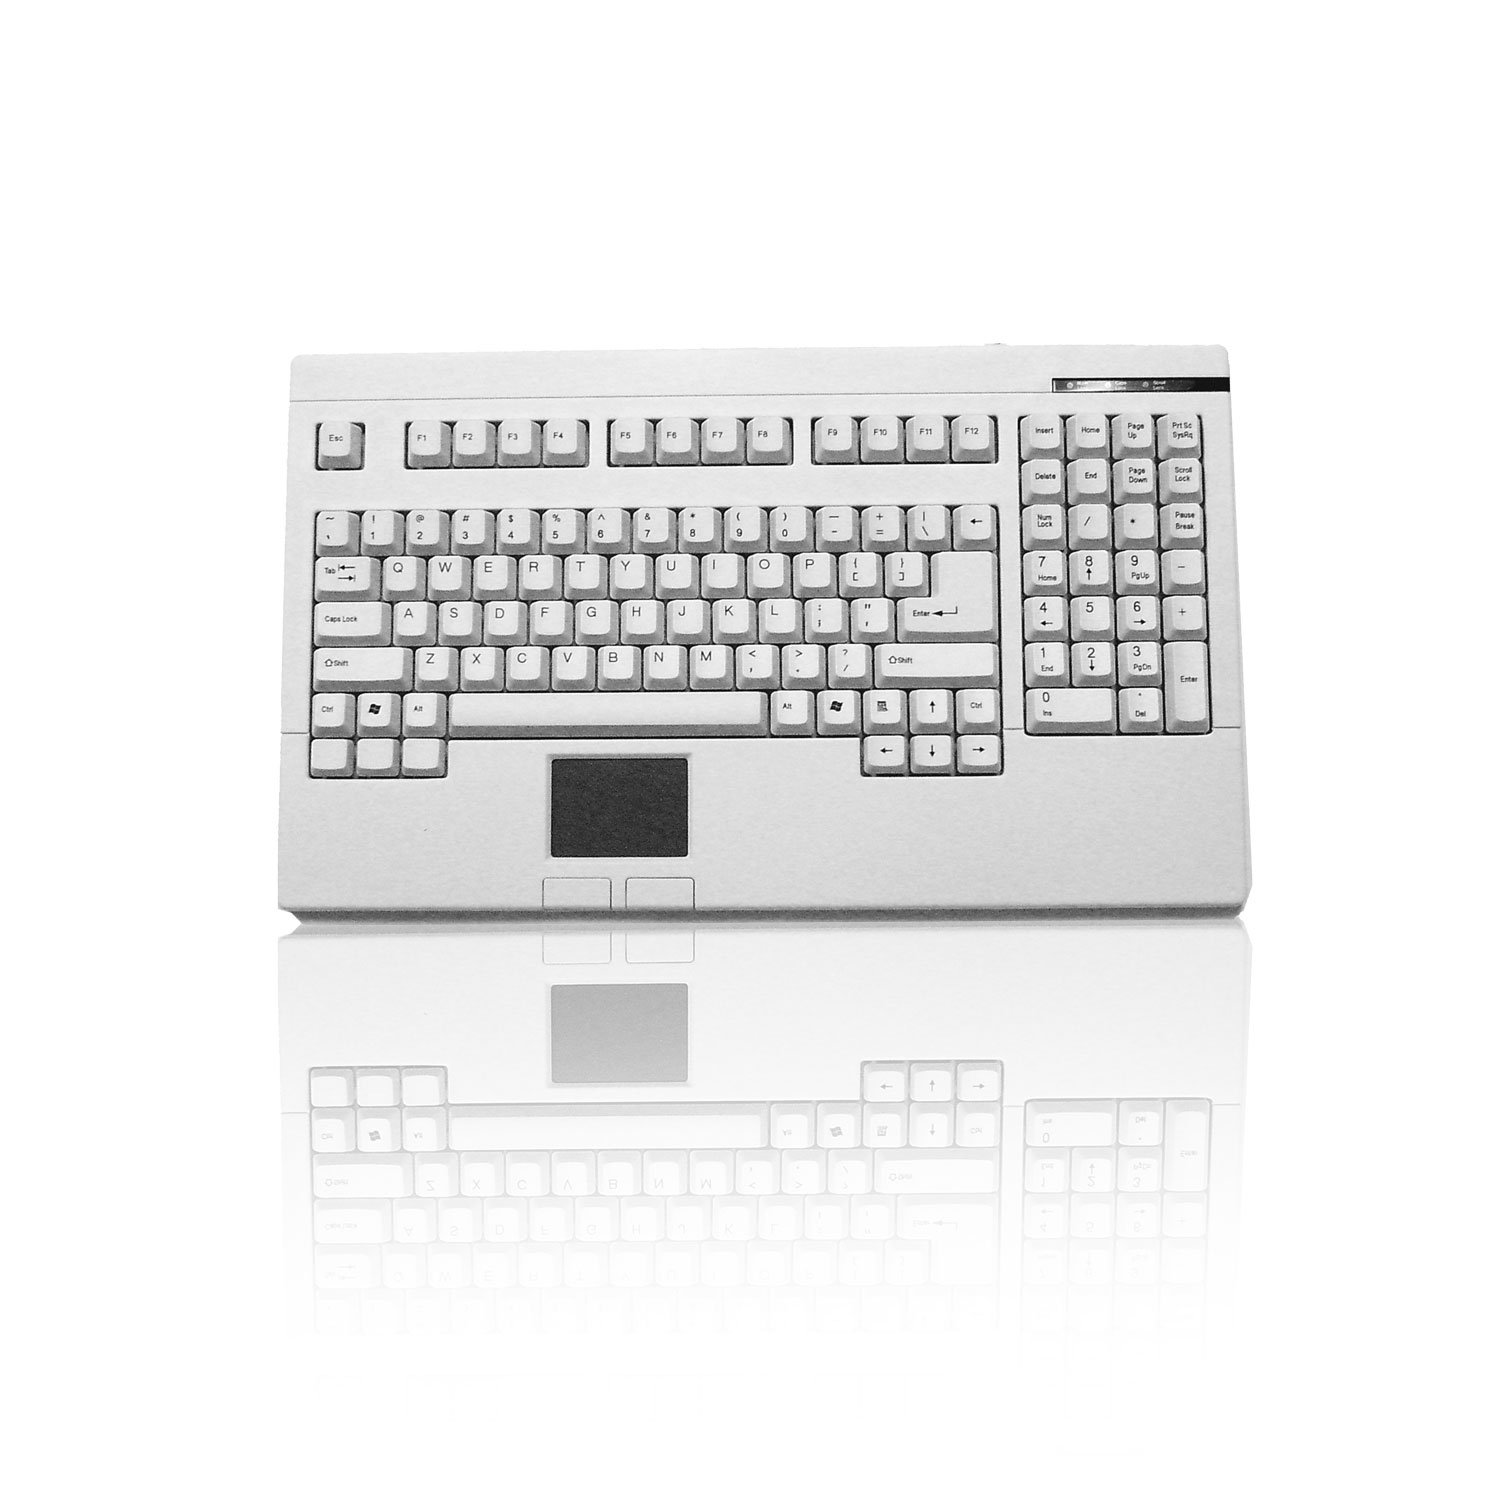 Adesso Easy-touch Keyboard, White (ACK-730UW-00)